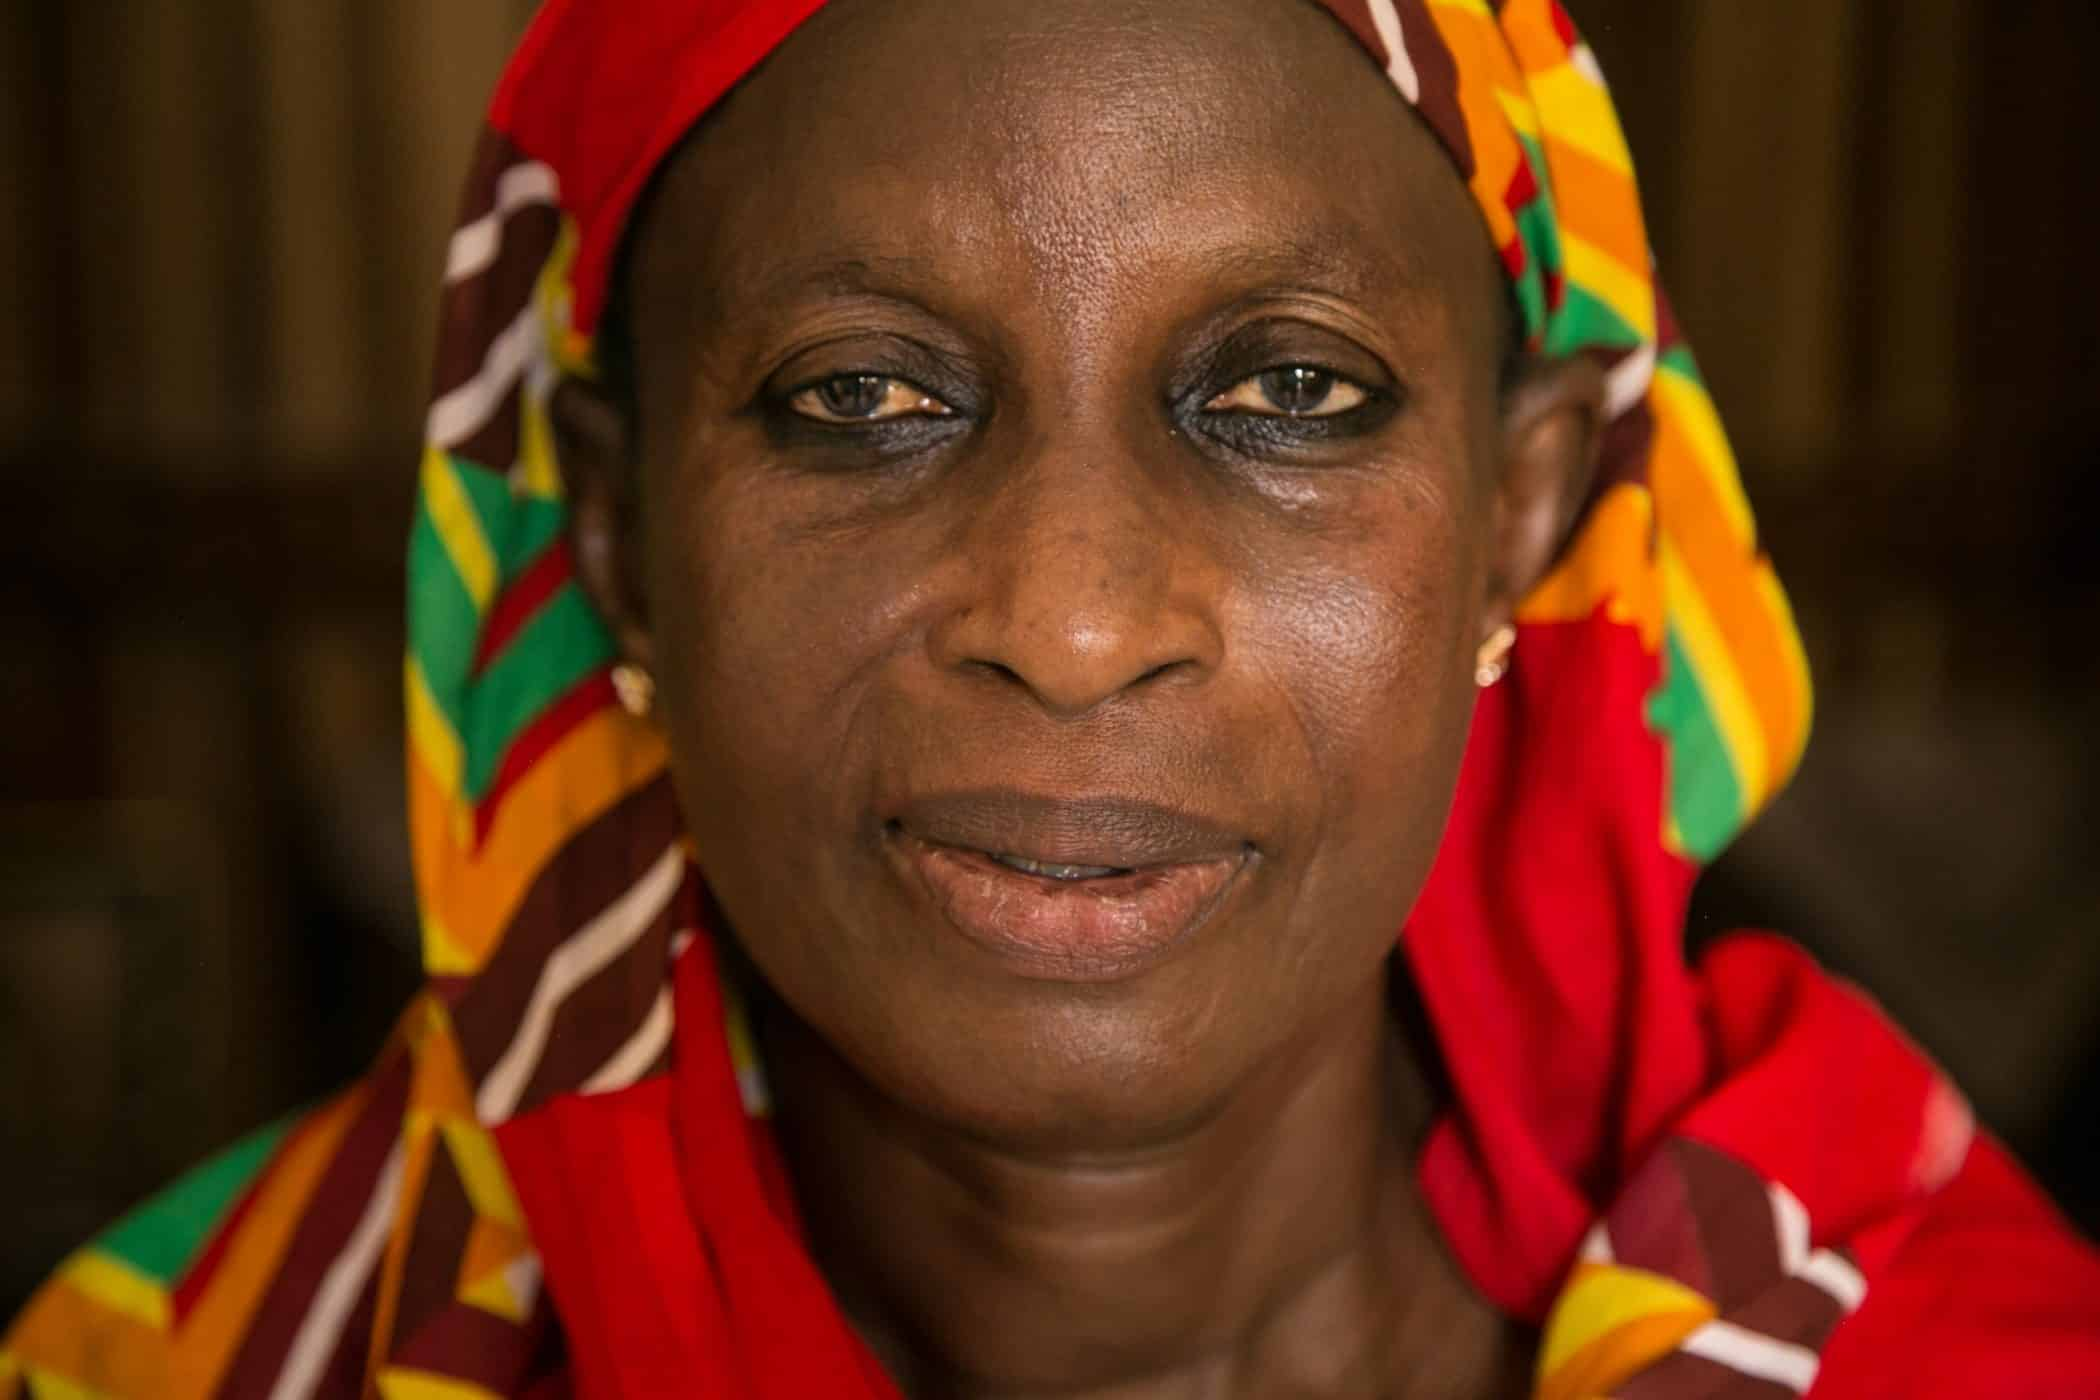 This is Seynabou, a grandmother in Senegal who supports herself and her husband with a small ice cream business.